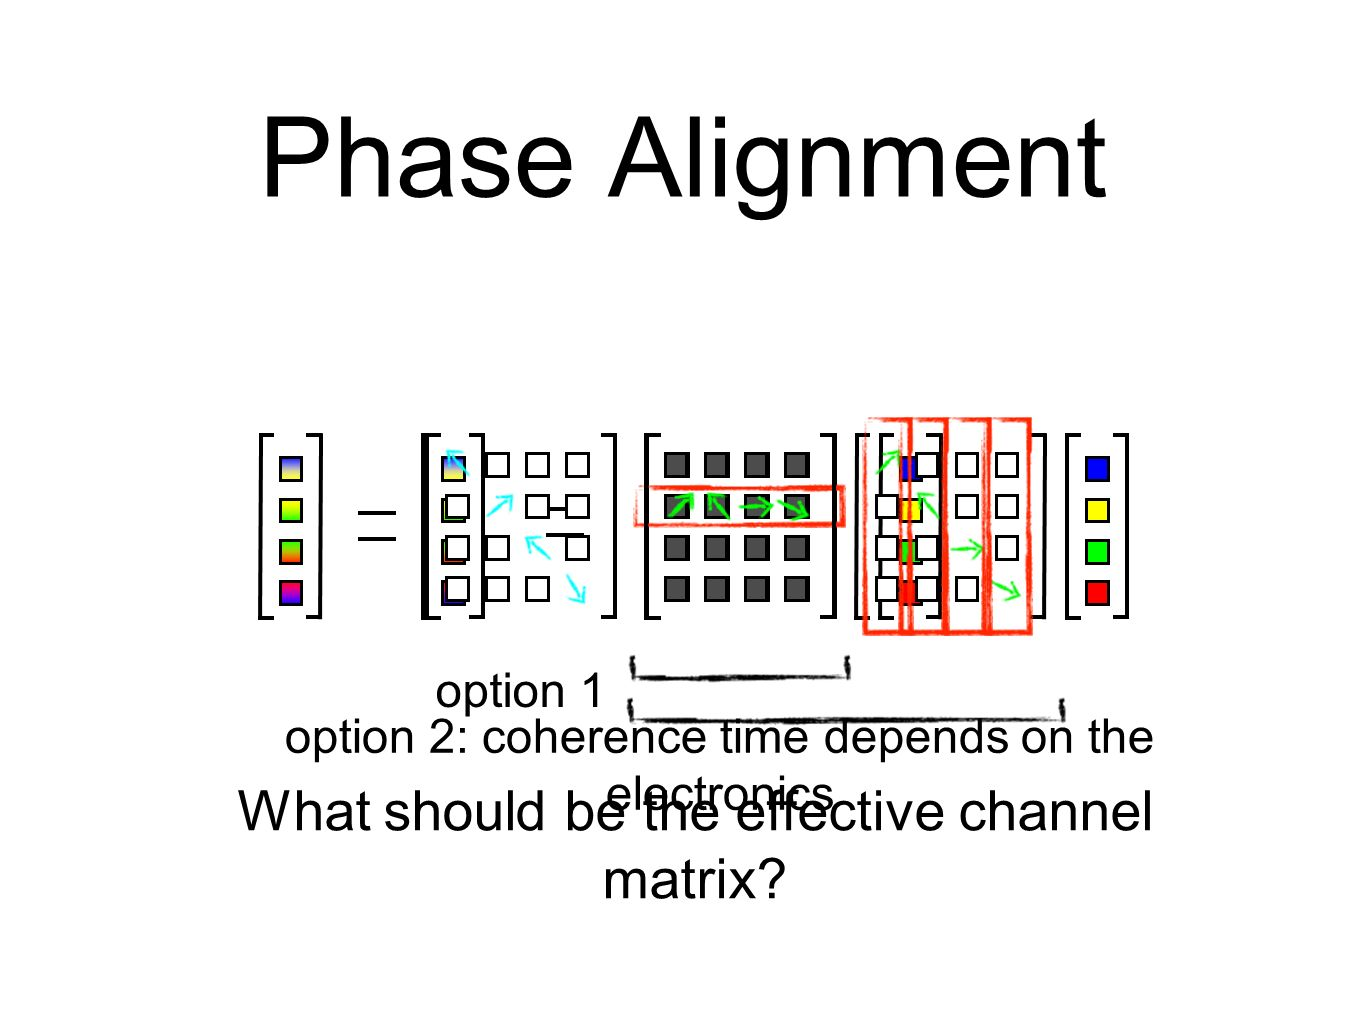 What should be the effective channel matrix? option 1 option 2: coherence time depends on the electronics